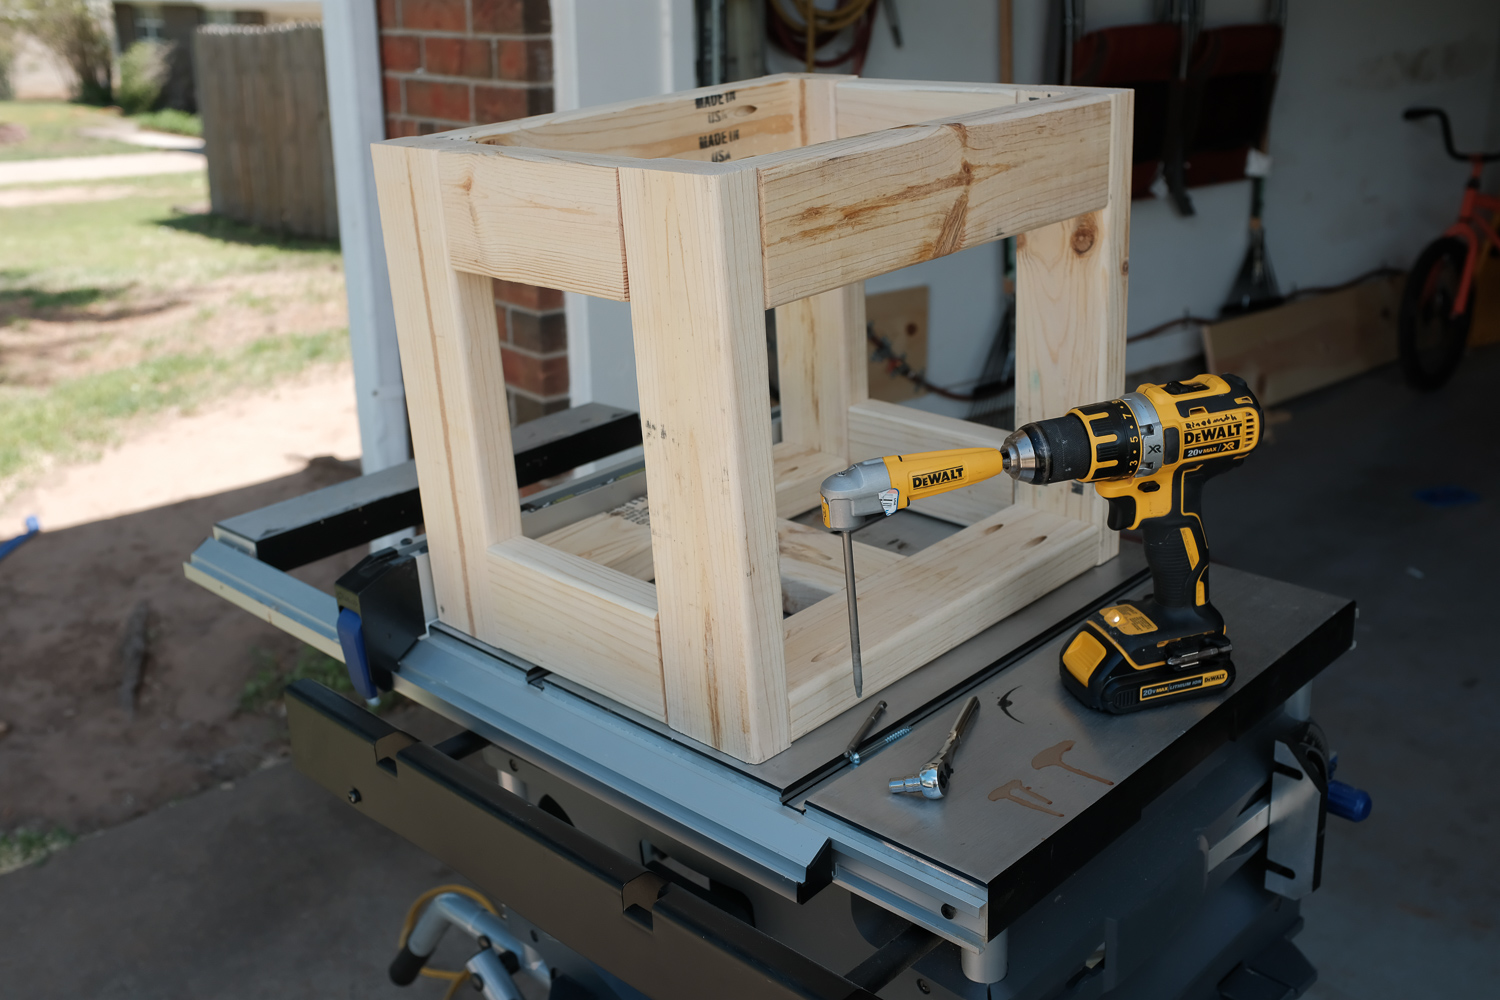 Image: The finished frame, upside down on my table saw which doubles as a small workbench.